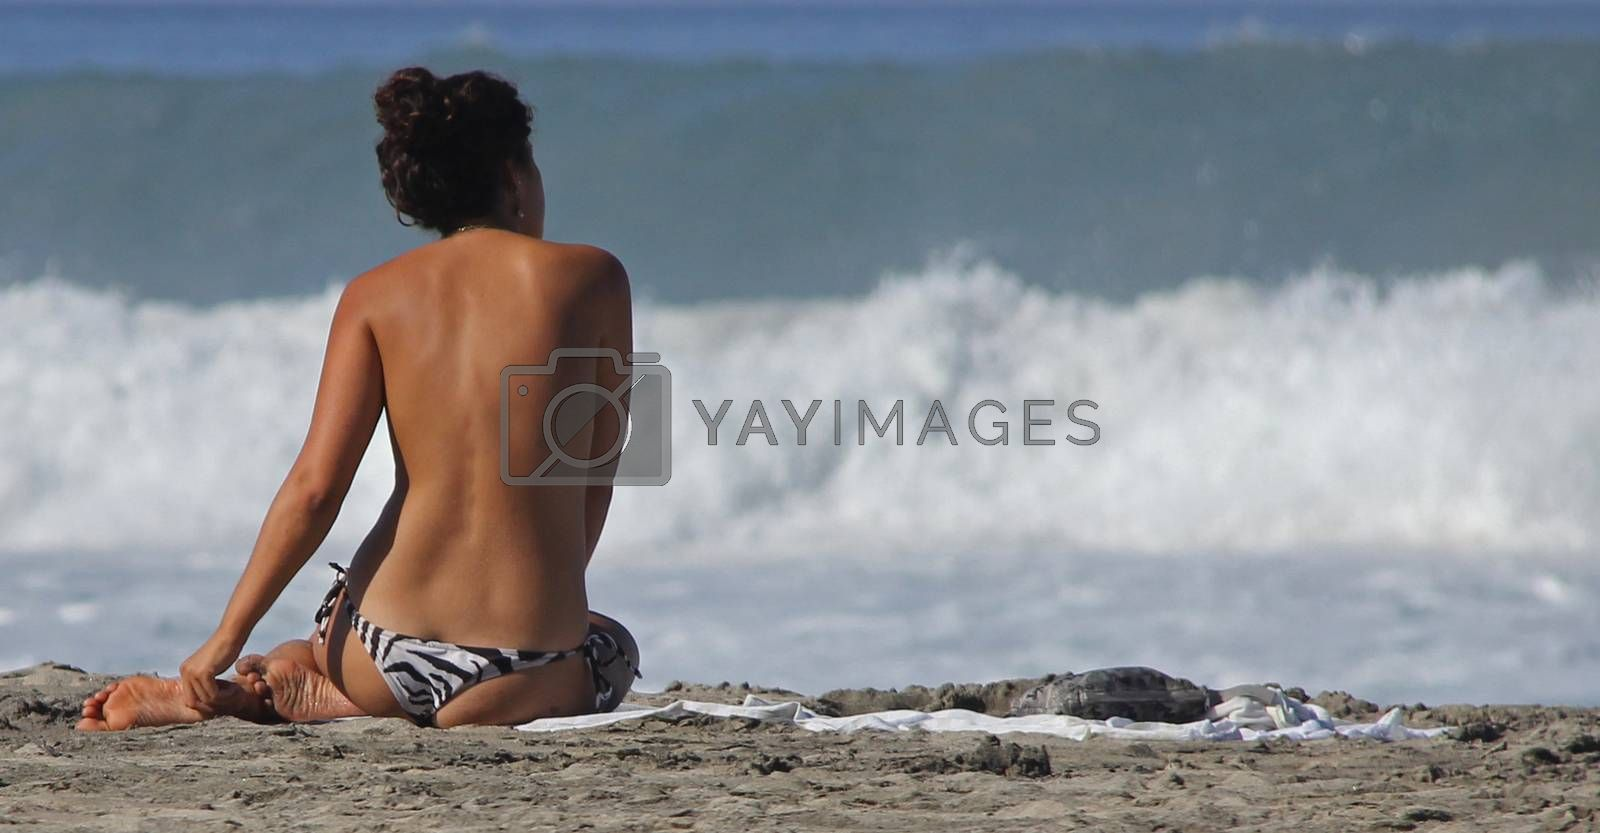 A young topless woman on a beach in Puerto Escondido, Mexico 24 Mar 2013 No model release Editorial only